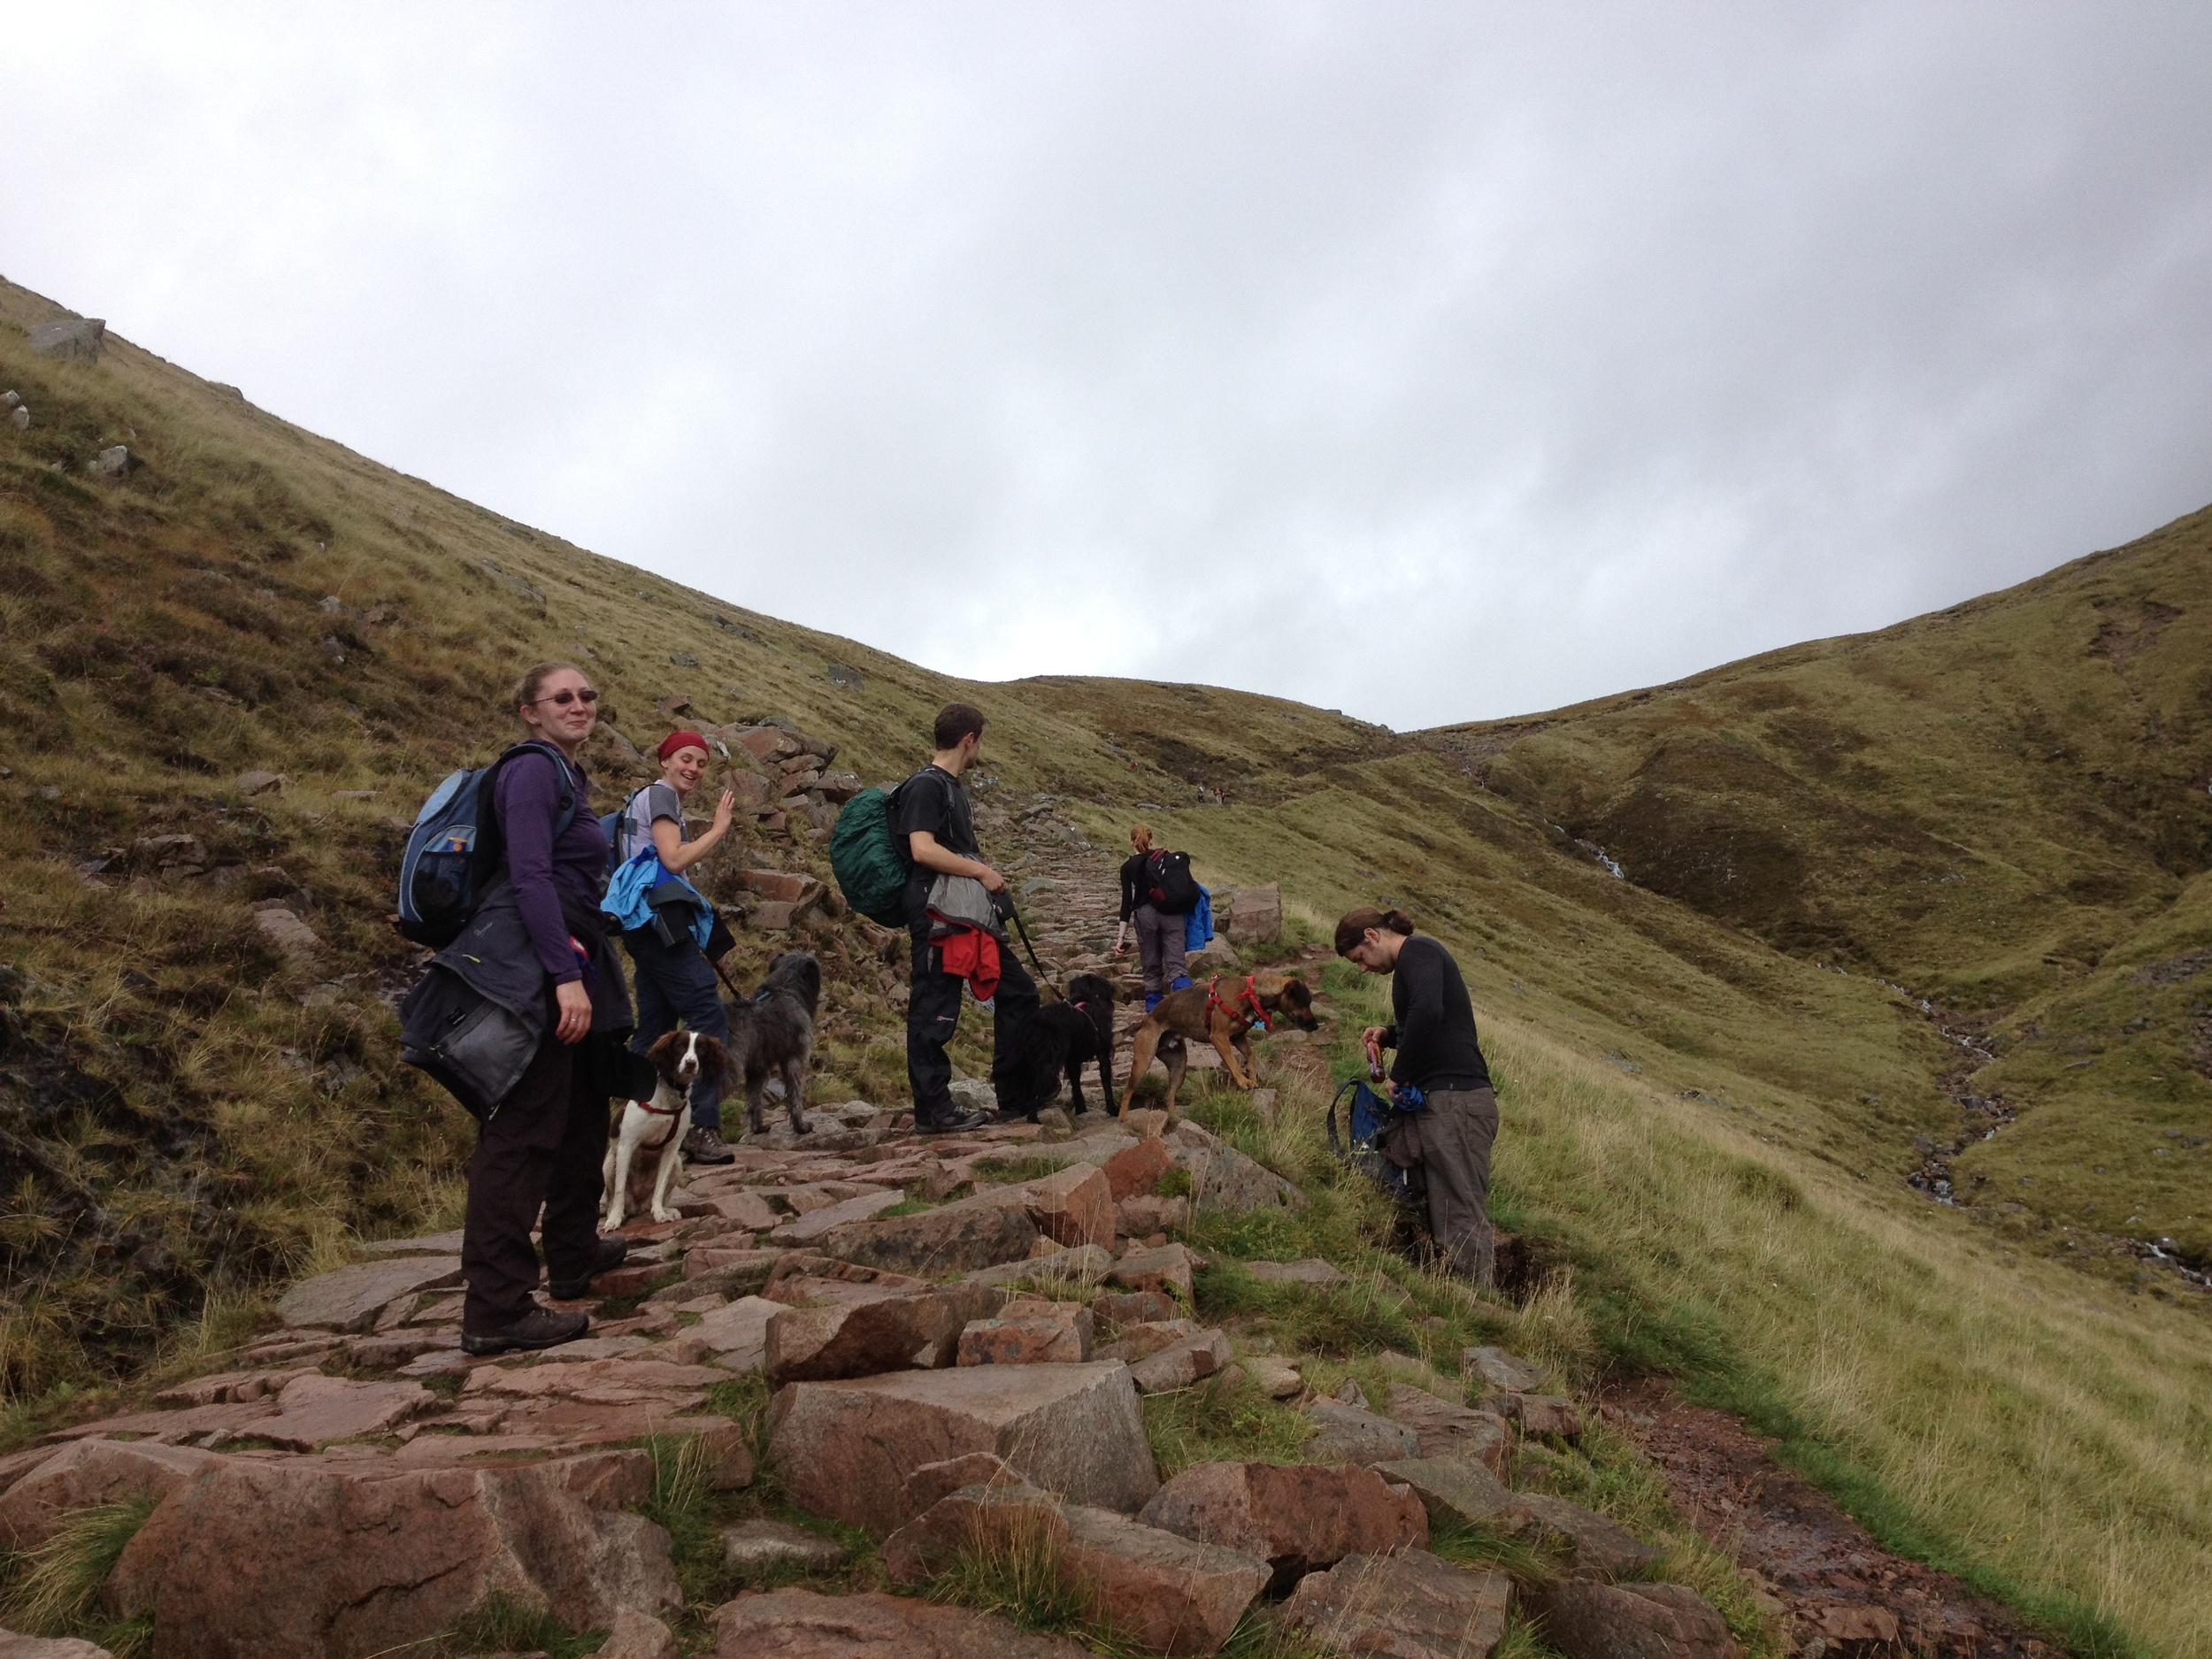 The Writing Man and his friends stop for refreshment on the walk up Ben Nevis